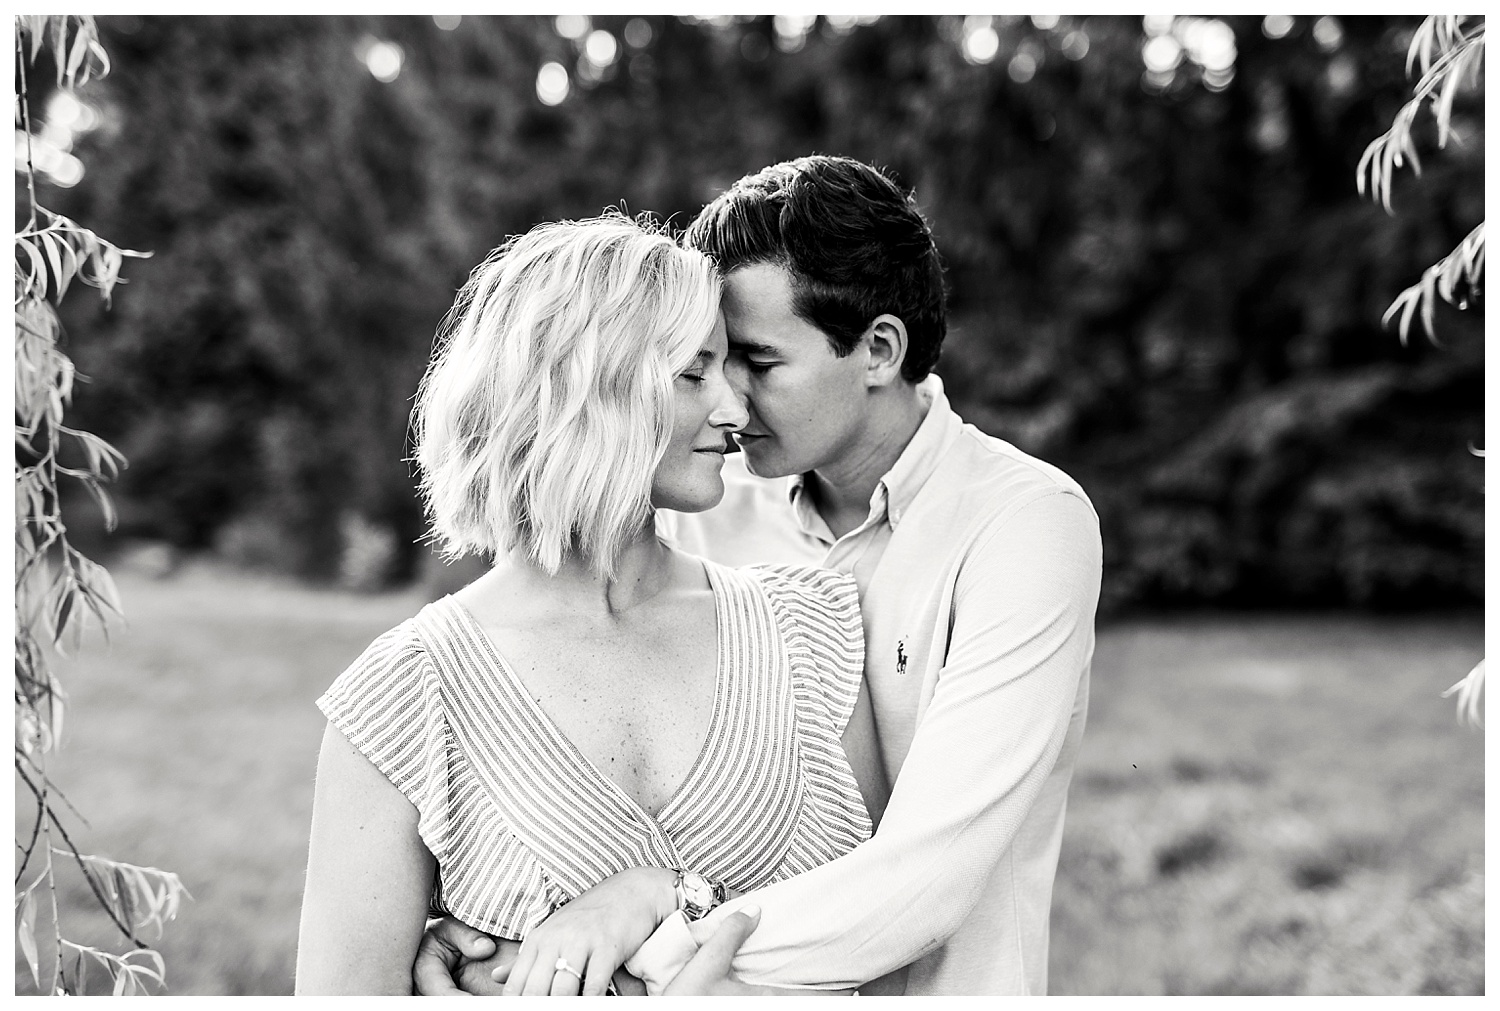 Hunterdon_County_Engagement_Session_Apollo_Fields99.jpg